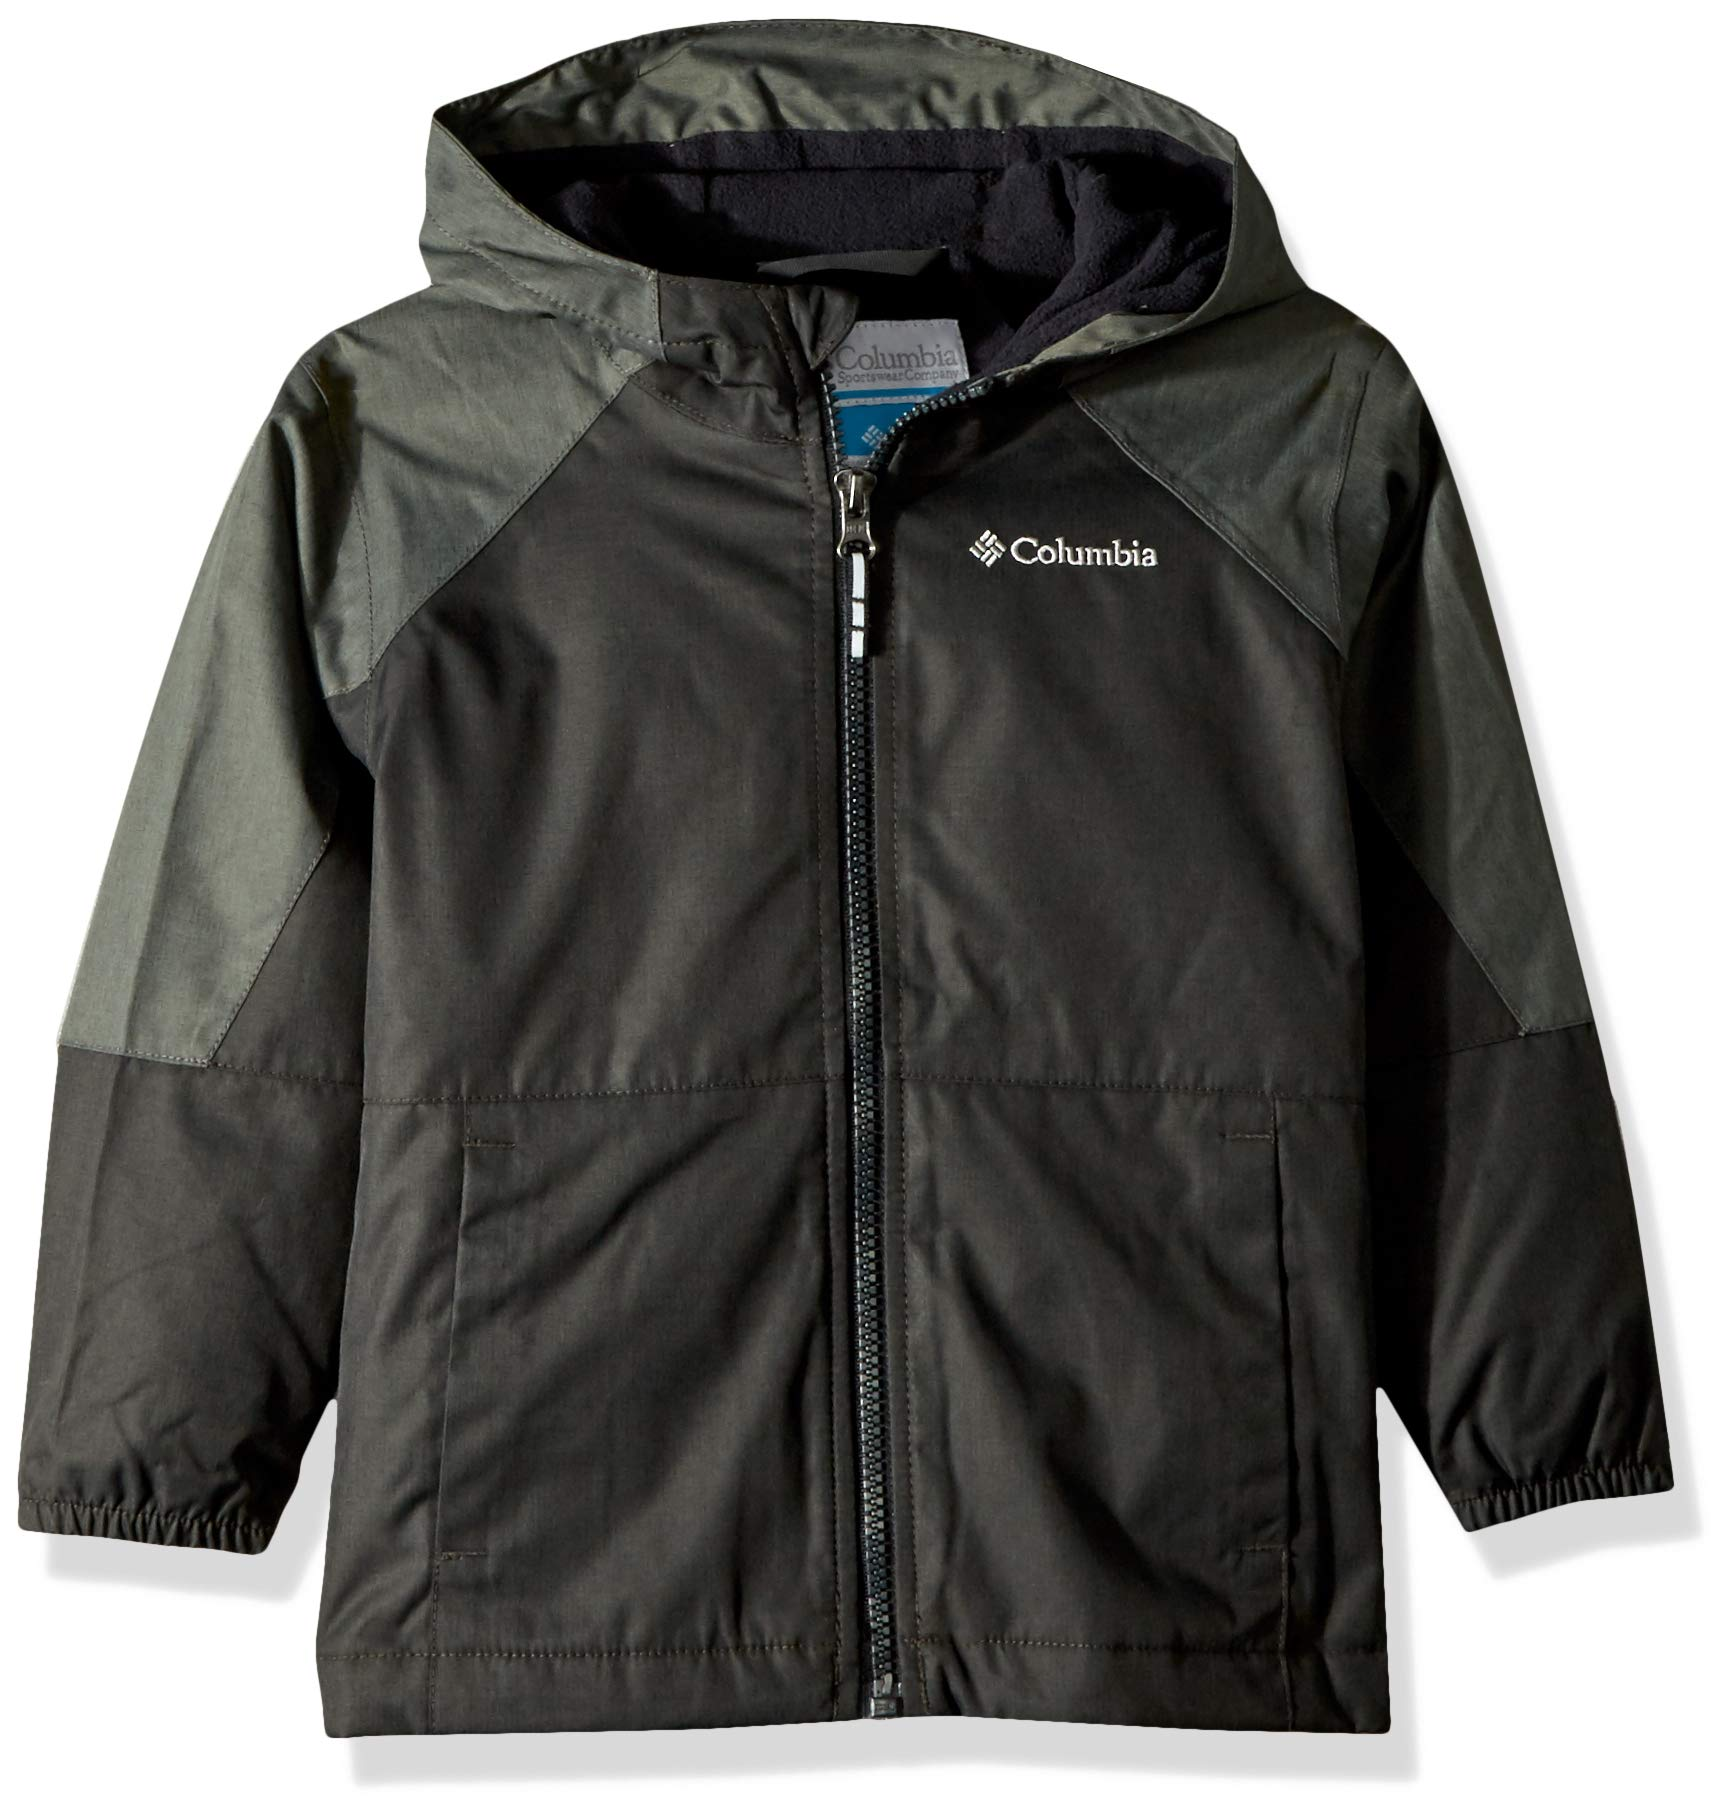 Columbia Boys' Toddler Endless Explorer Jacket, Black Heather/Grill Heather, 3T by Columbia